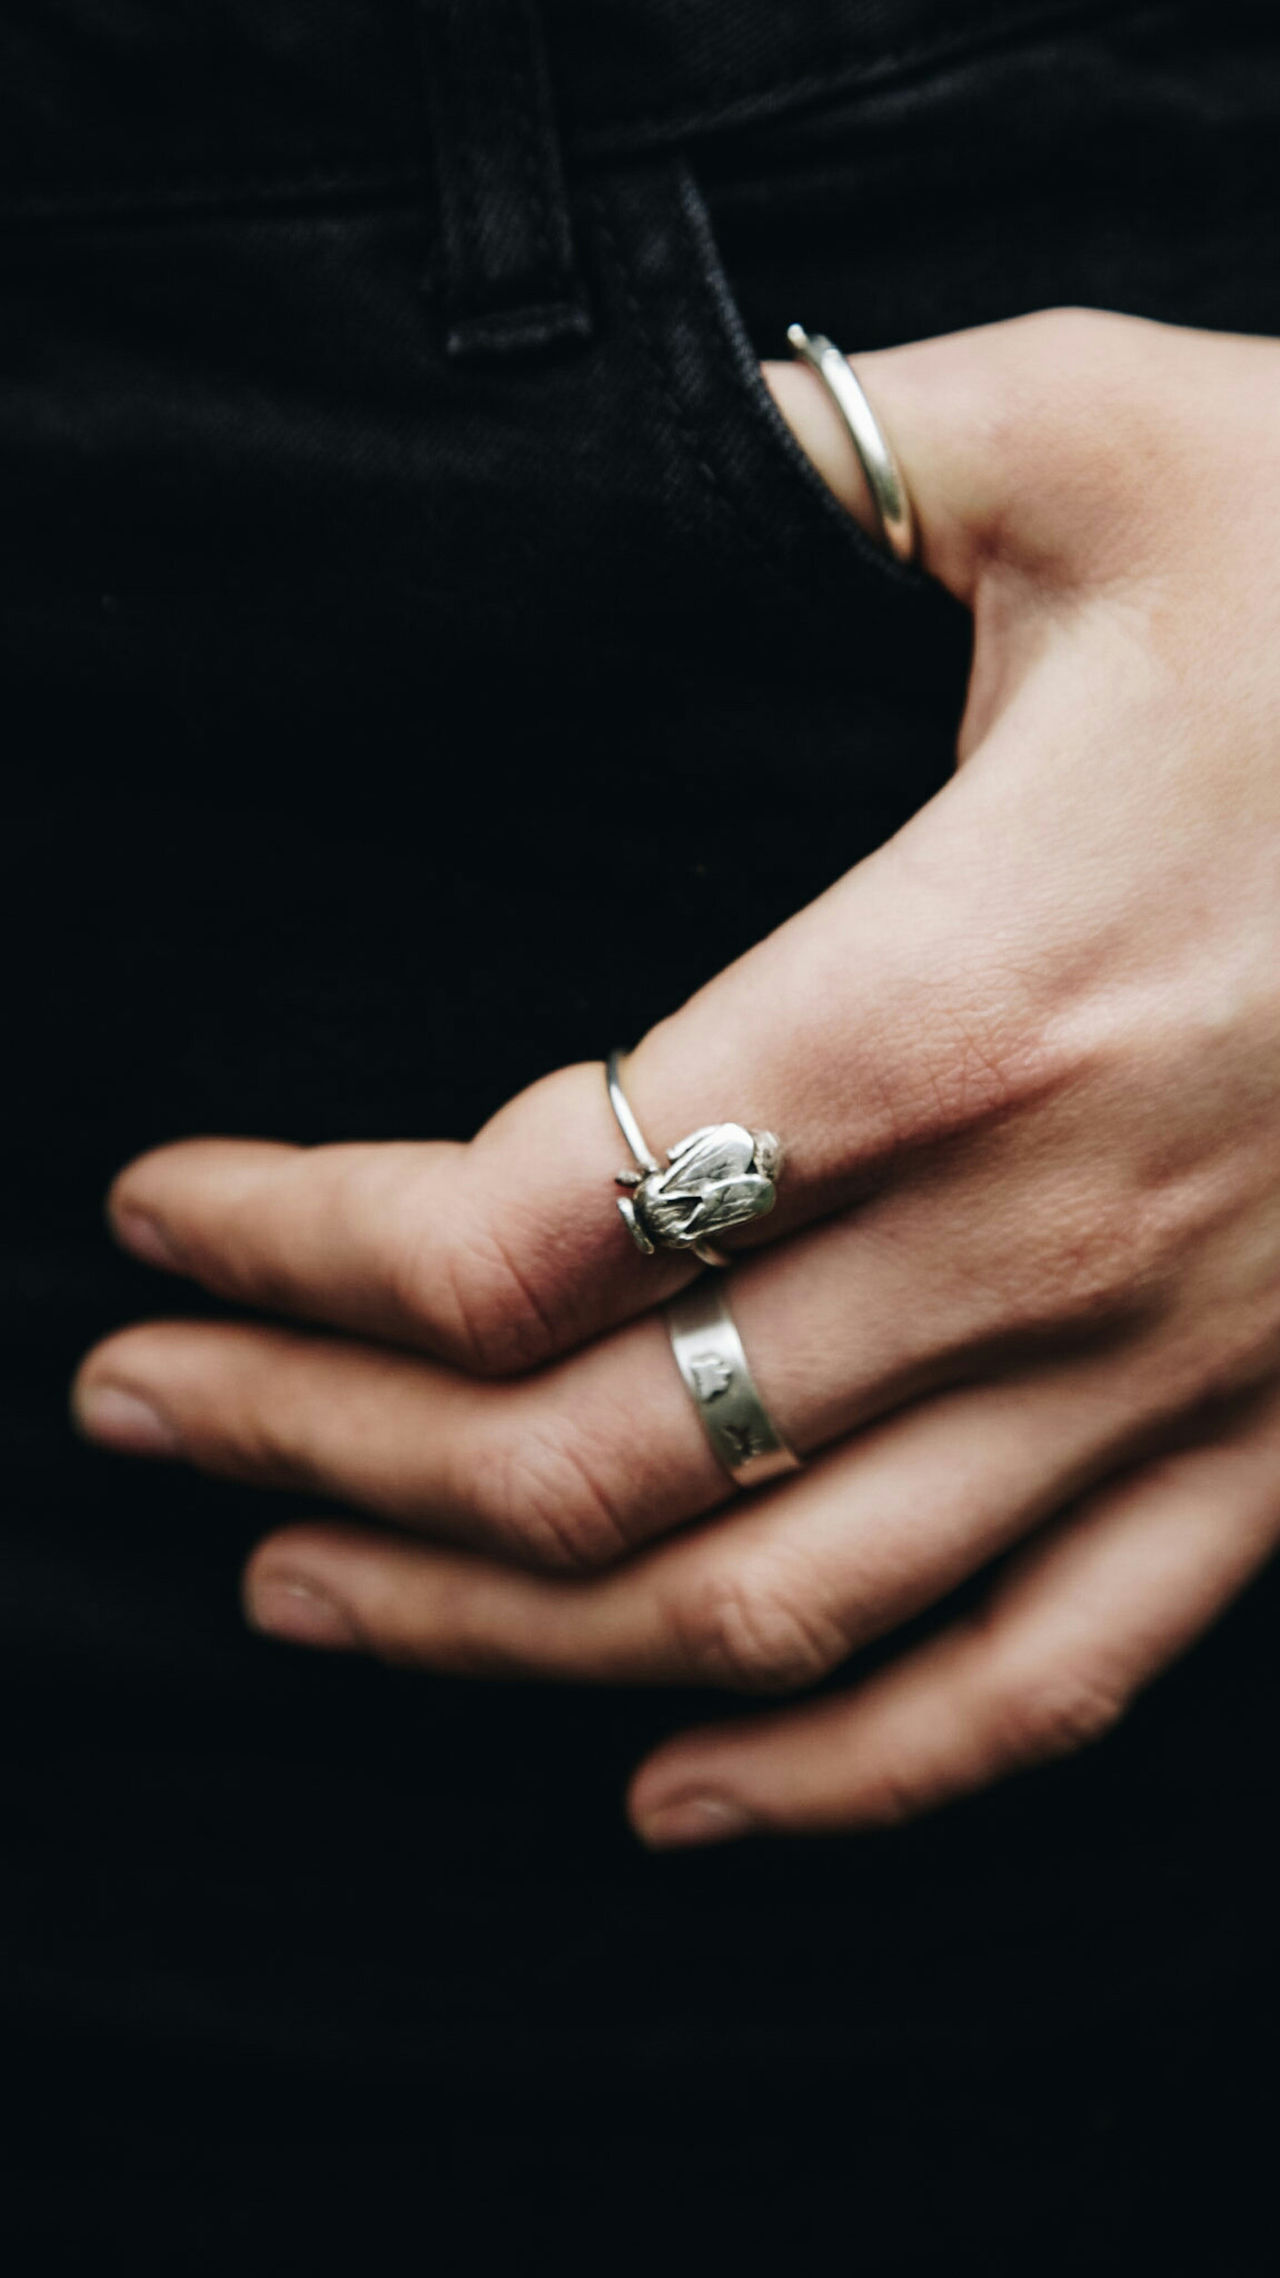 Human Hand Human Body Part Ring Close-up One Person Black Background One Young Woman Only Customdesign Jewellery Bee Bee Ring